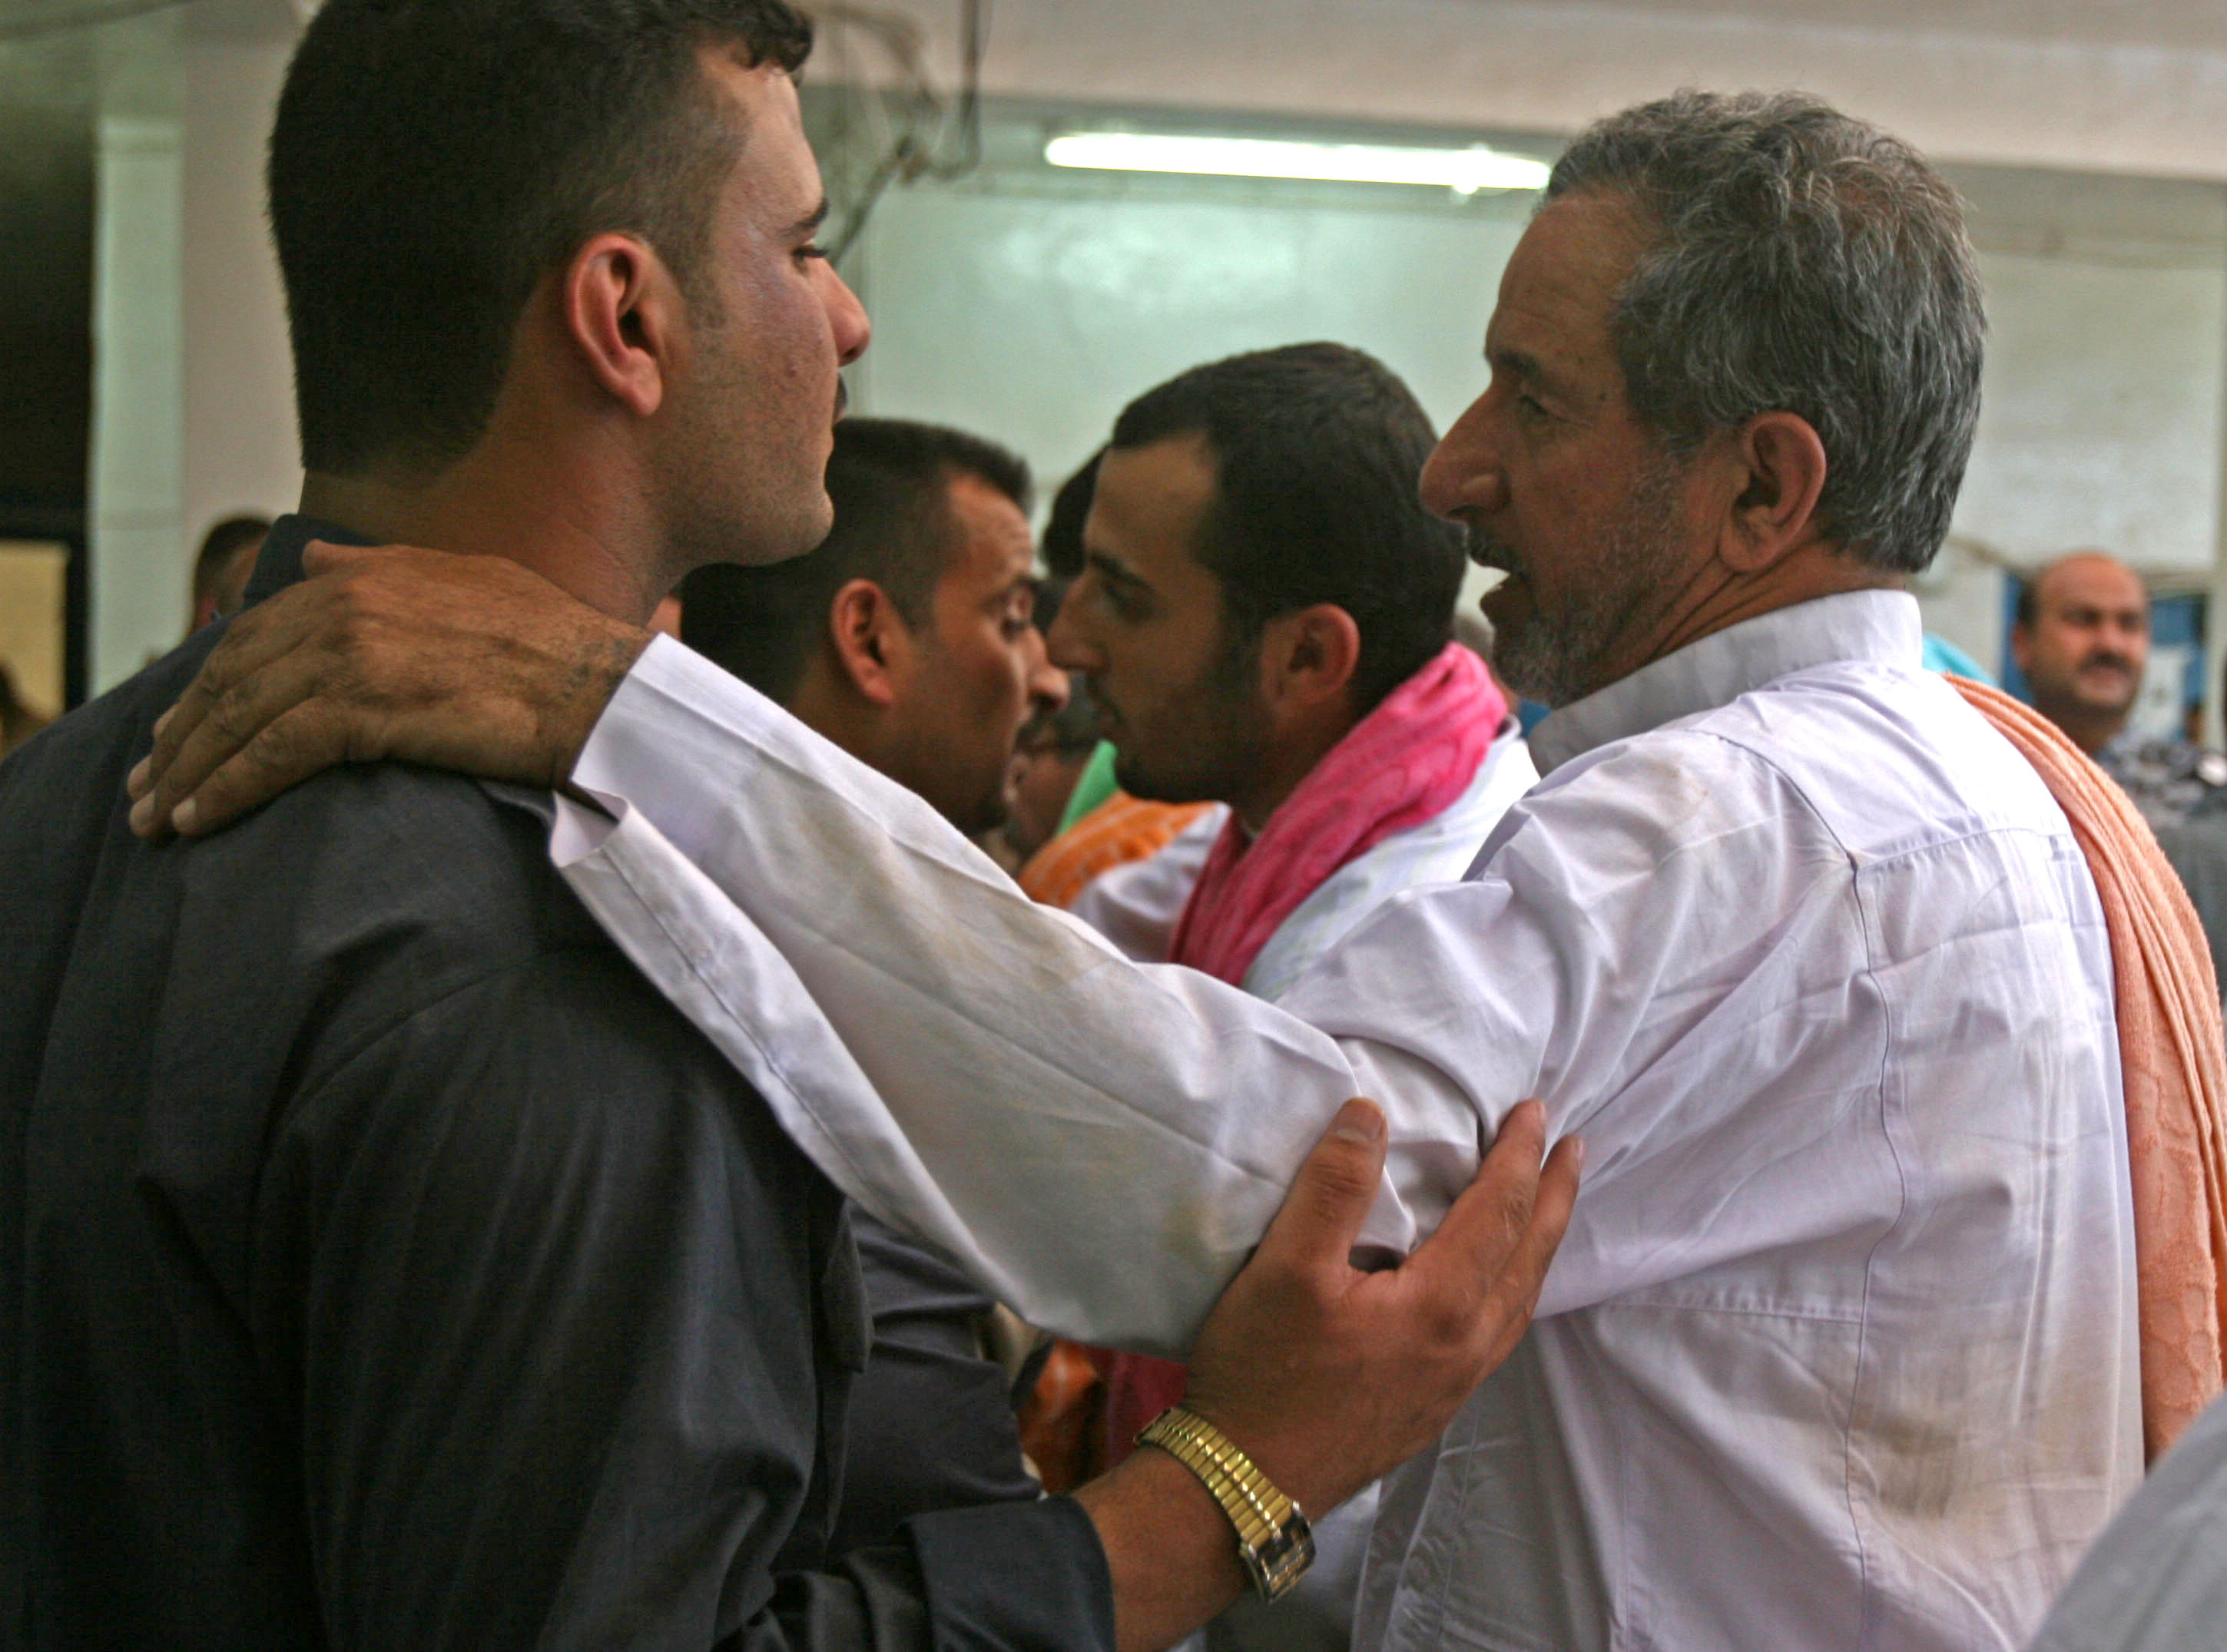 An Iraqi man speaks with an Iraqi Police Officer at the Iraqi Police Station in Karma, before he is released back to his family